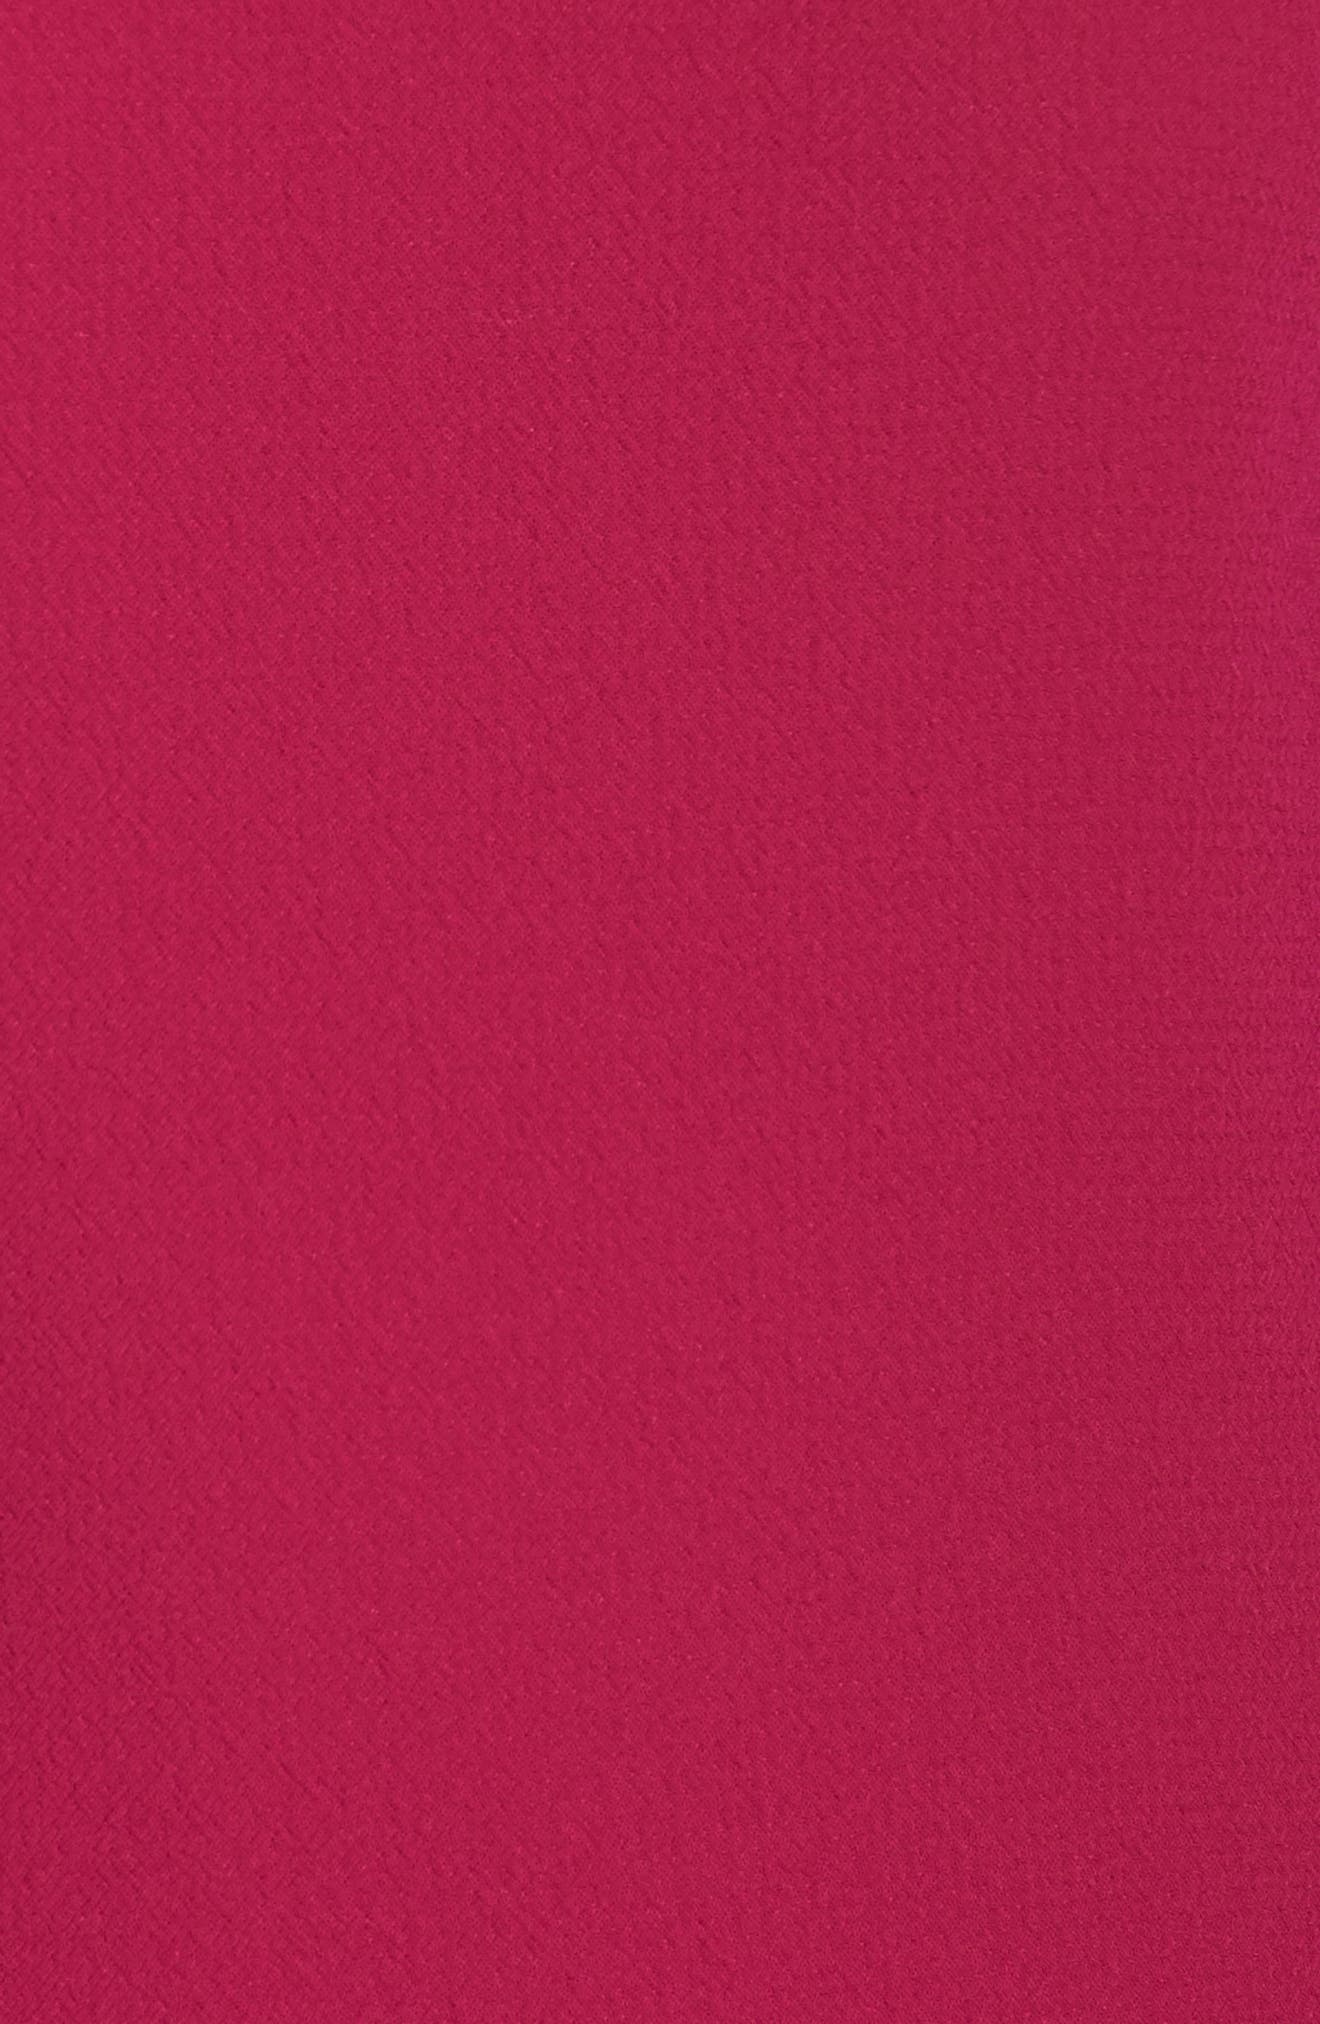 Bell Sleeve Fit & Flare Dress,                             Alternate thumbnail 5, color,                             Magenta